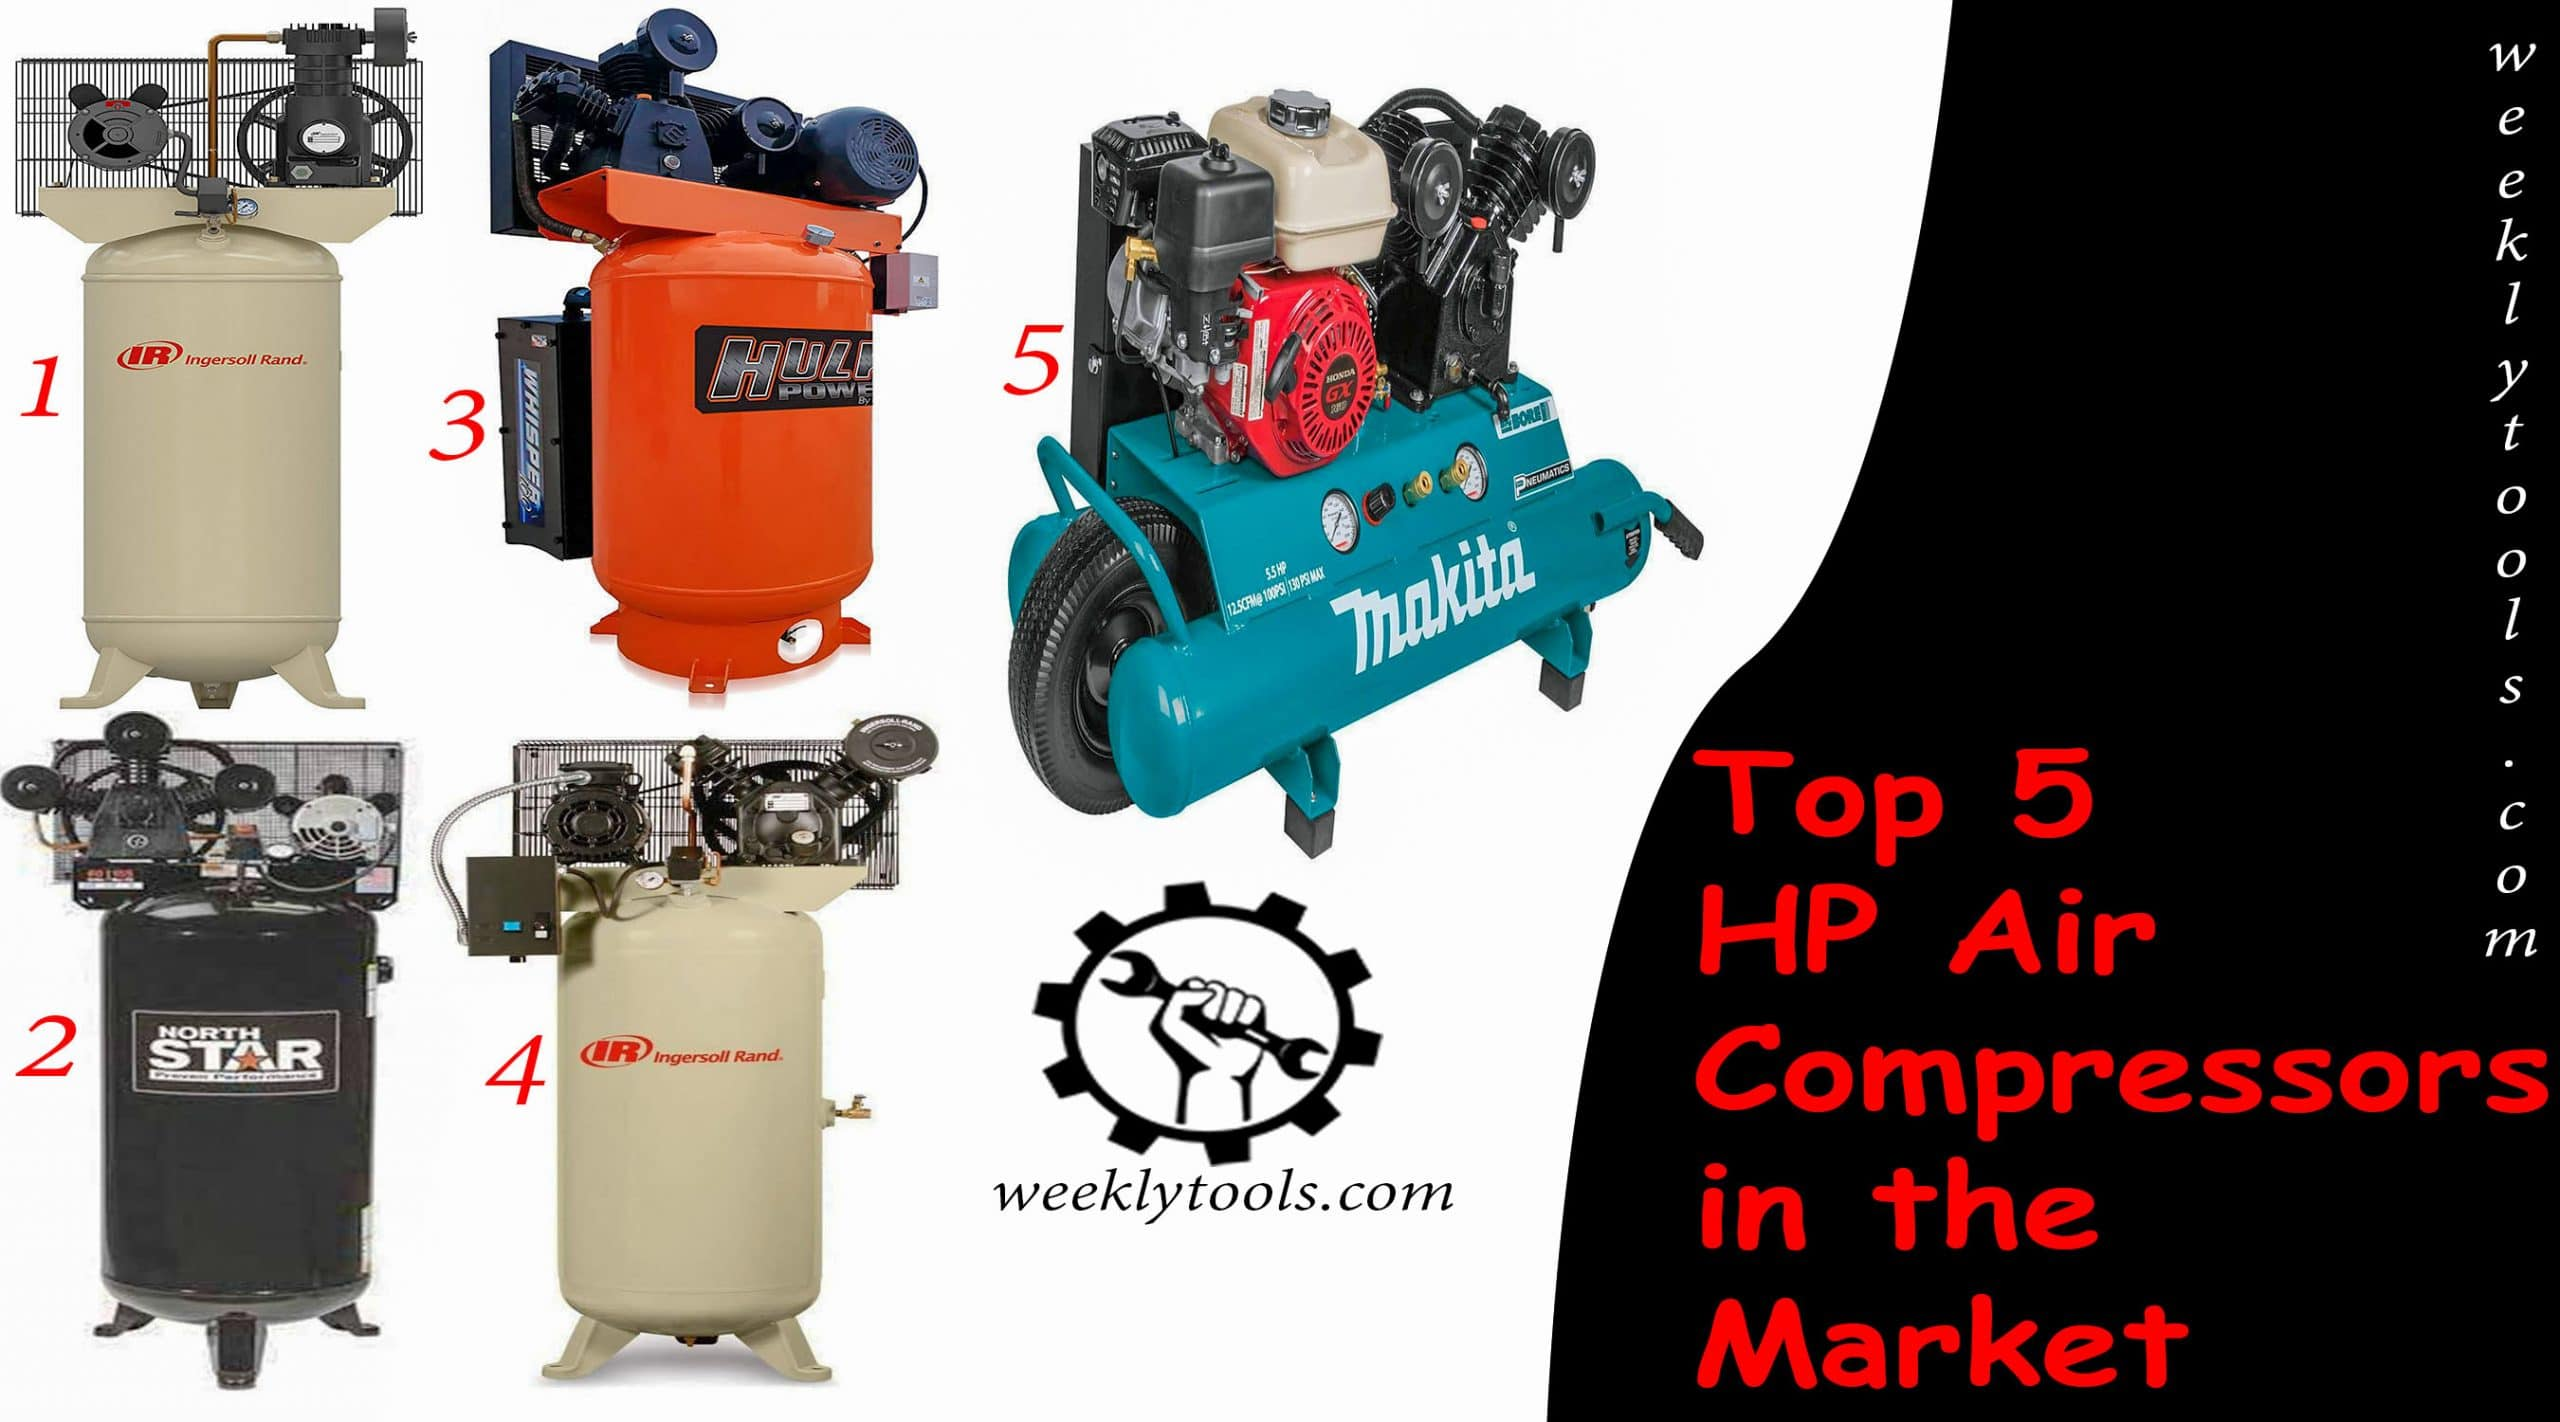 Top 5 HP Air Compressors in the Market